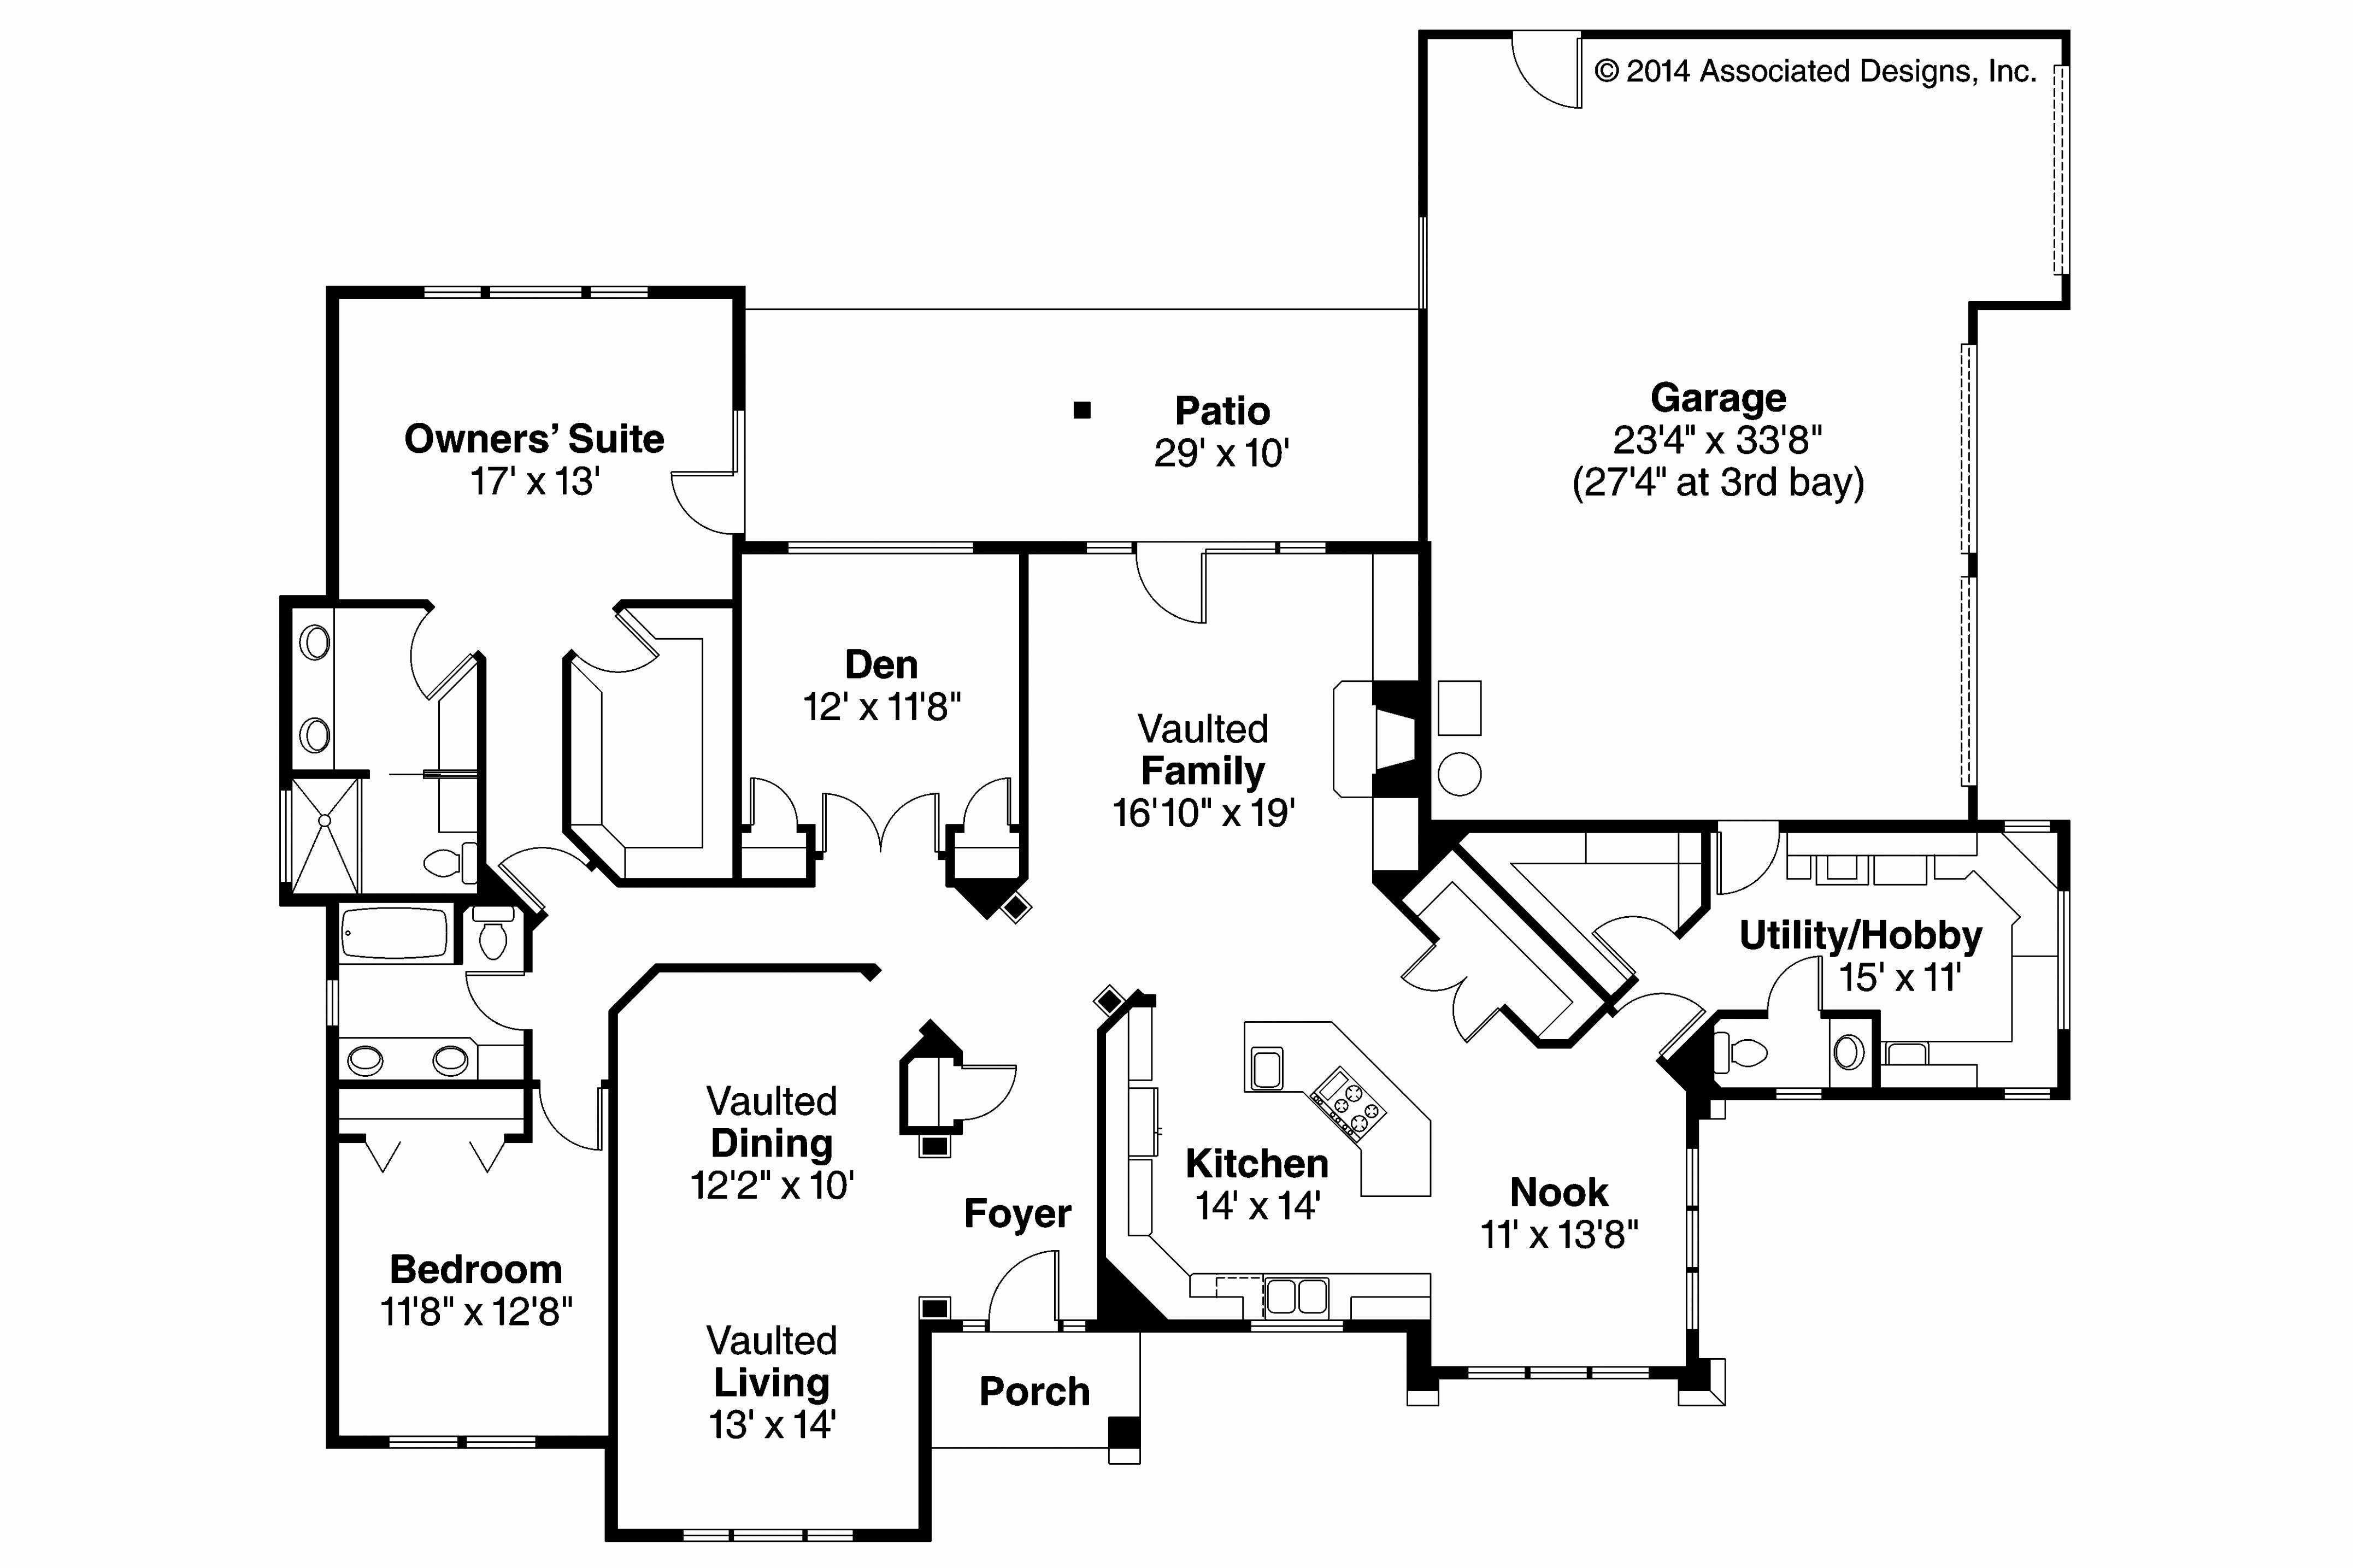 Ranch Style House Plan 3 Beds 2 Baths 1924 Sq Ft Plan 427 6 Ranch Style House Plans Small House Plans Ranch House Plans